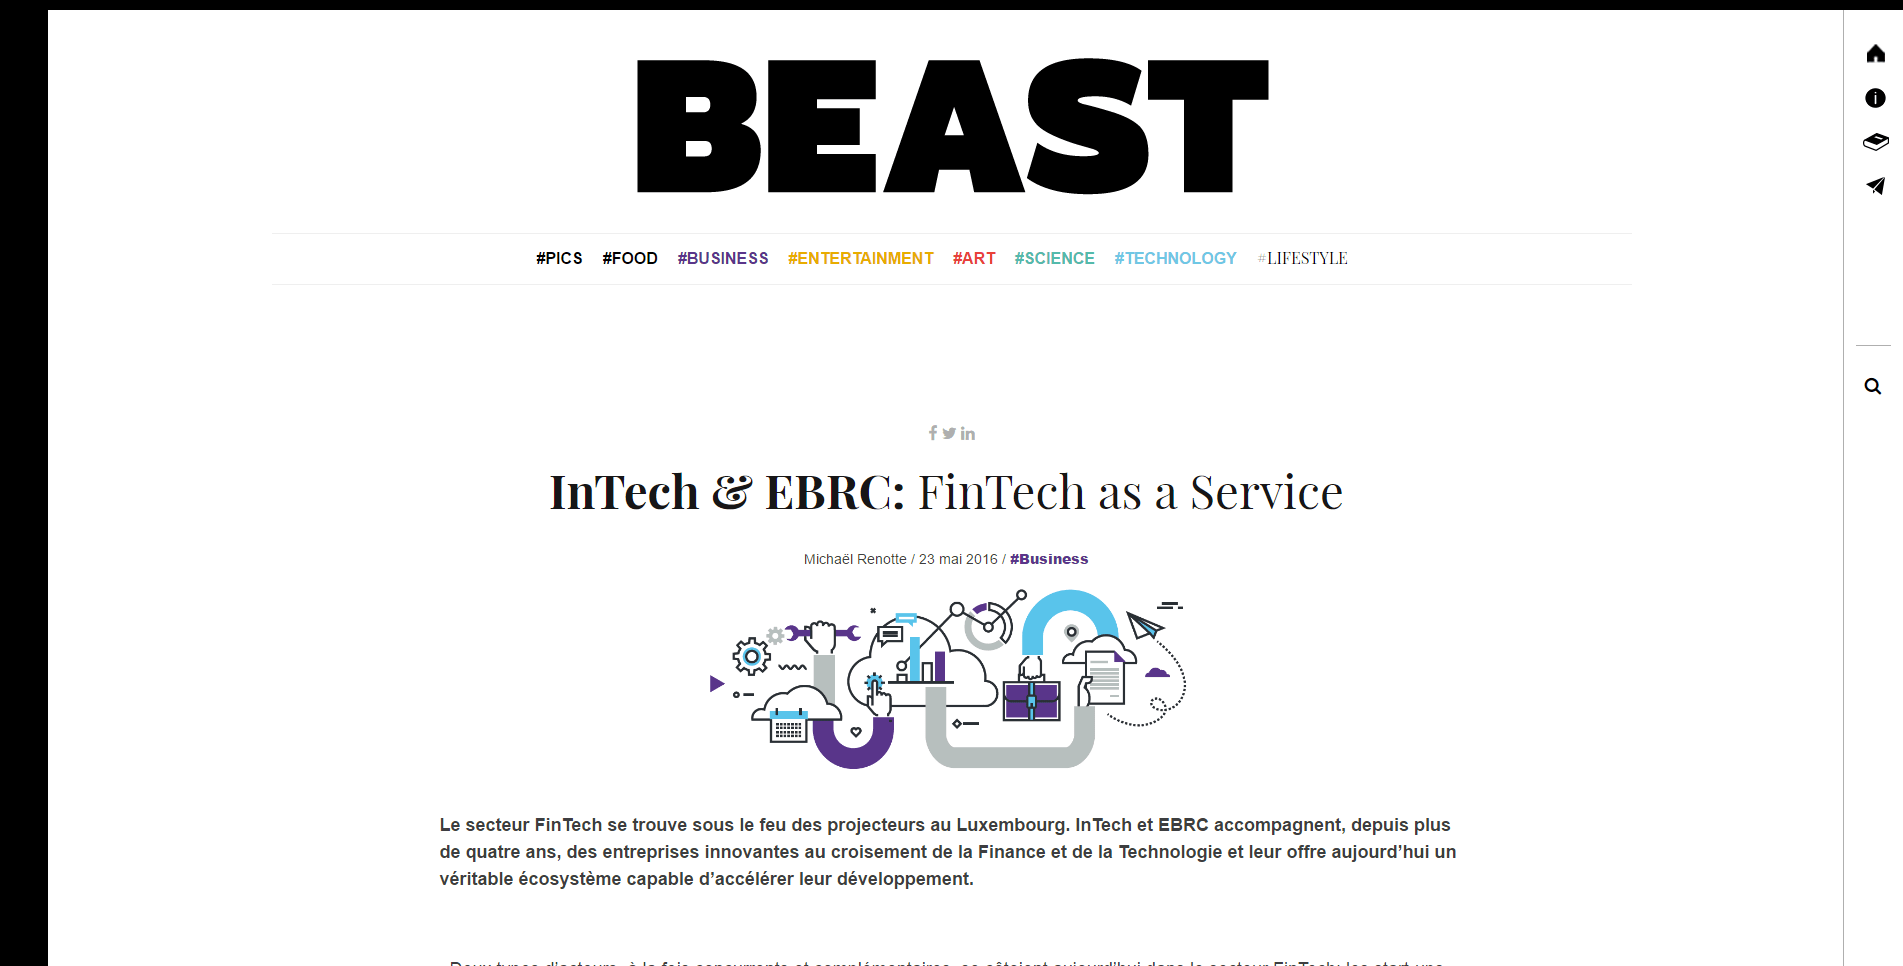 InTech & EBRC: FinTech as a Service